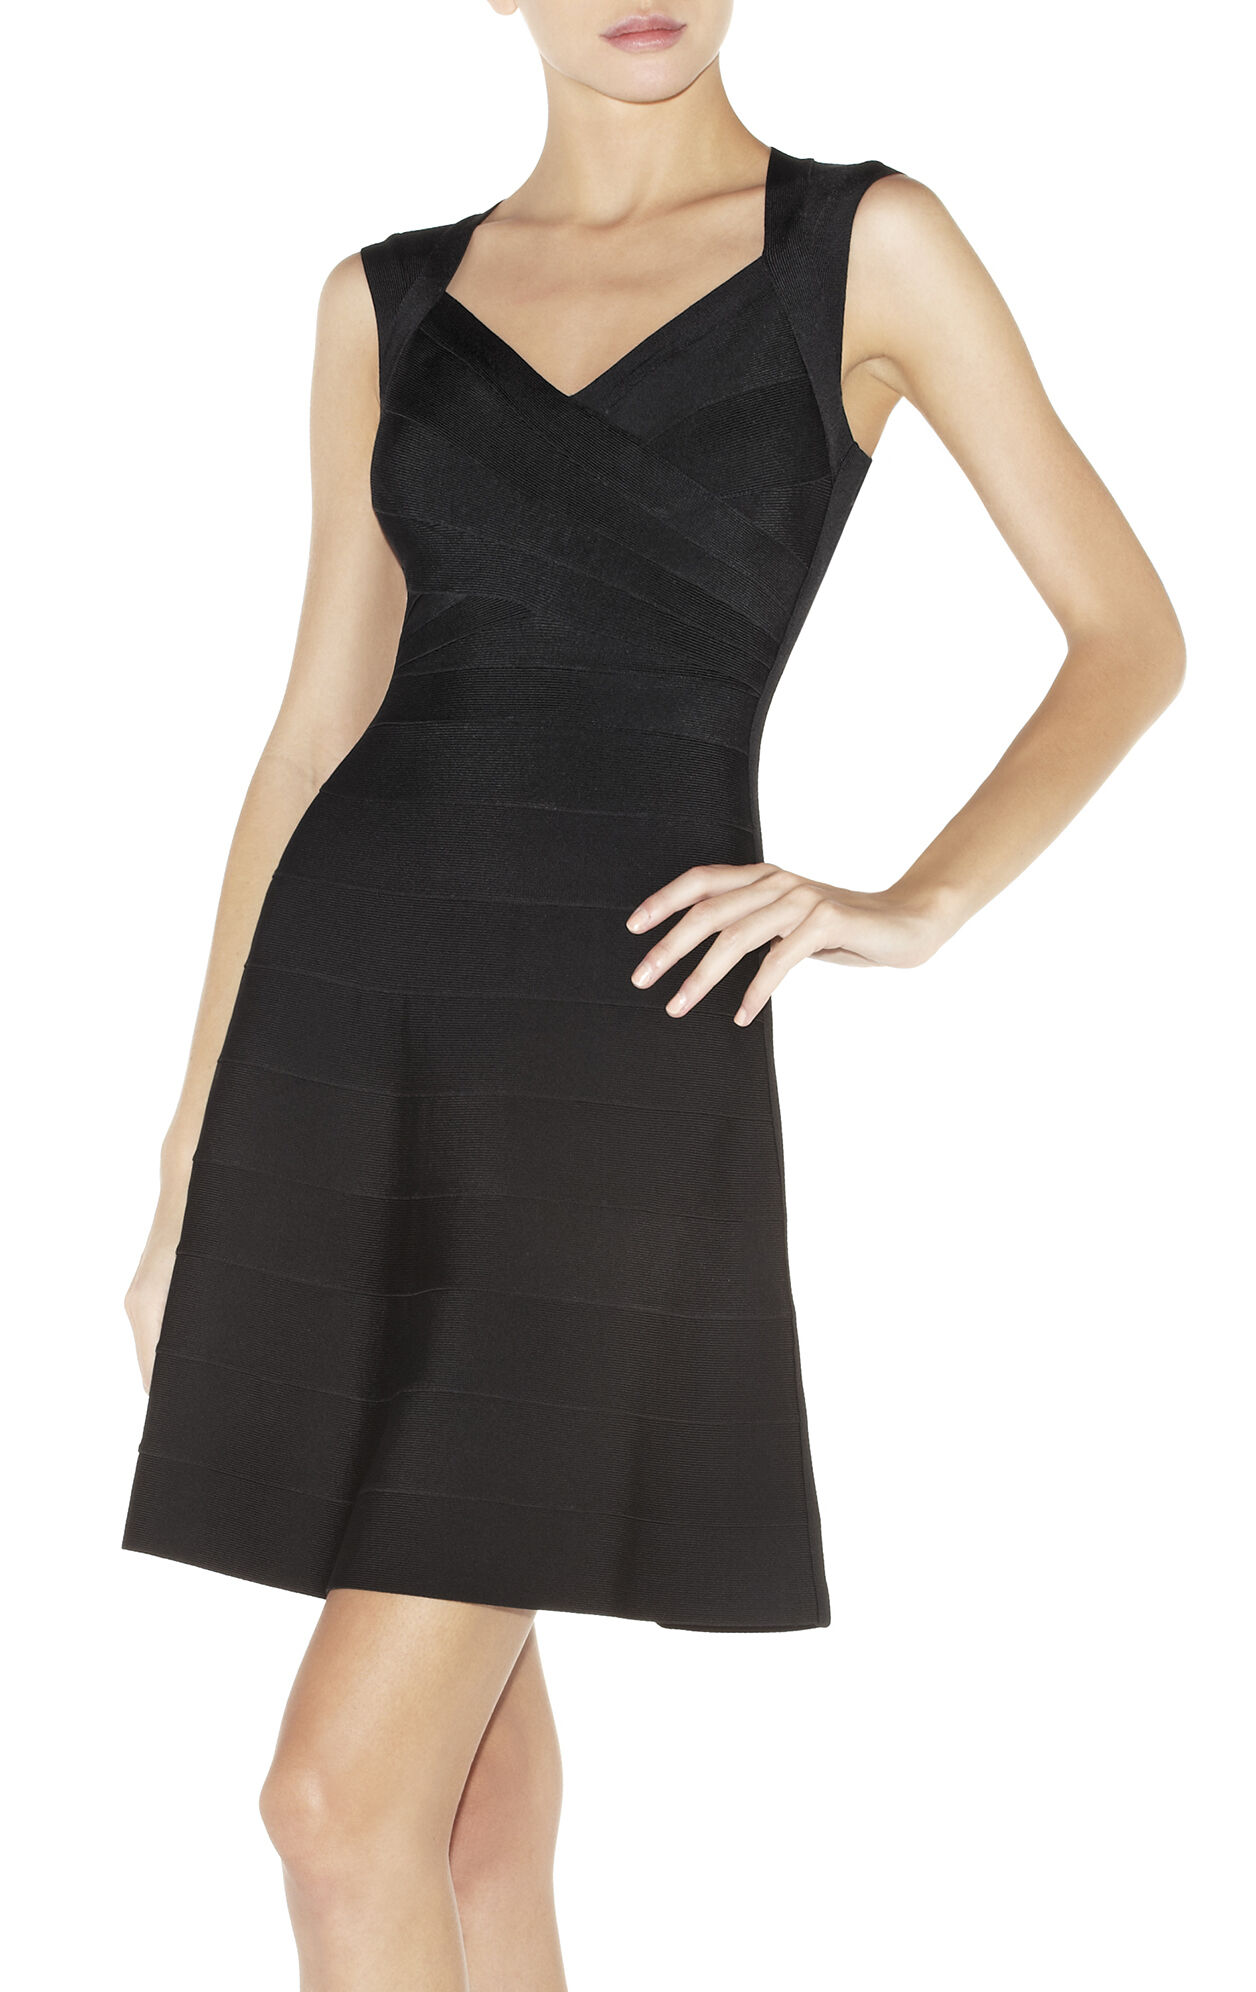 BRUNA A-LINE BANDAGE DRESS